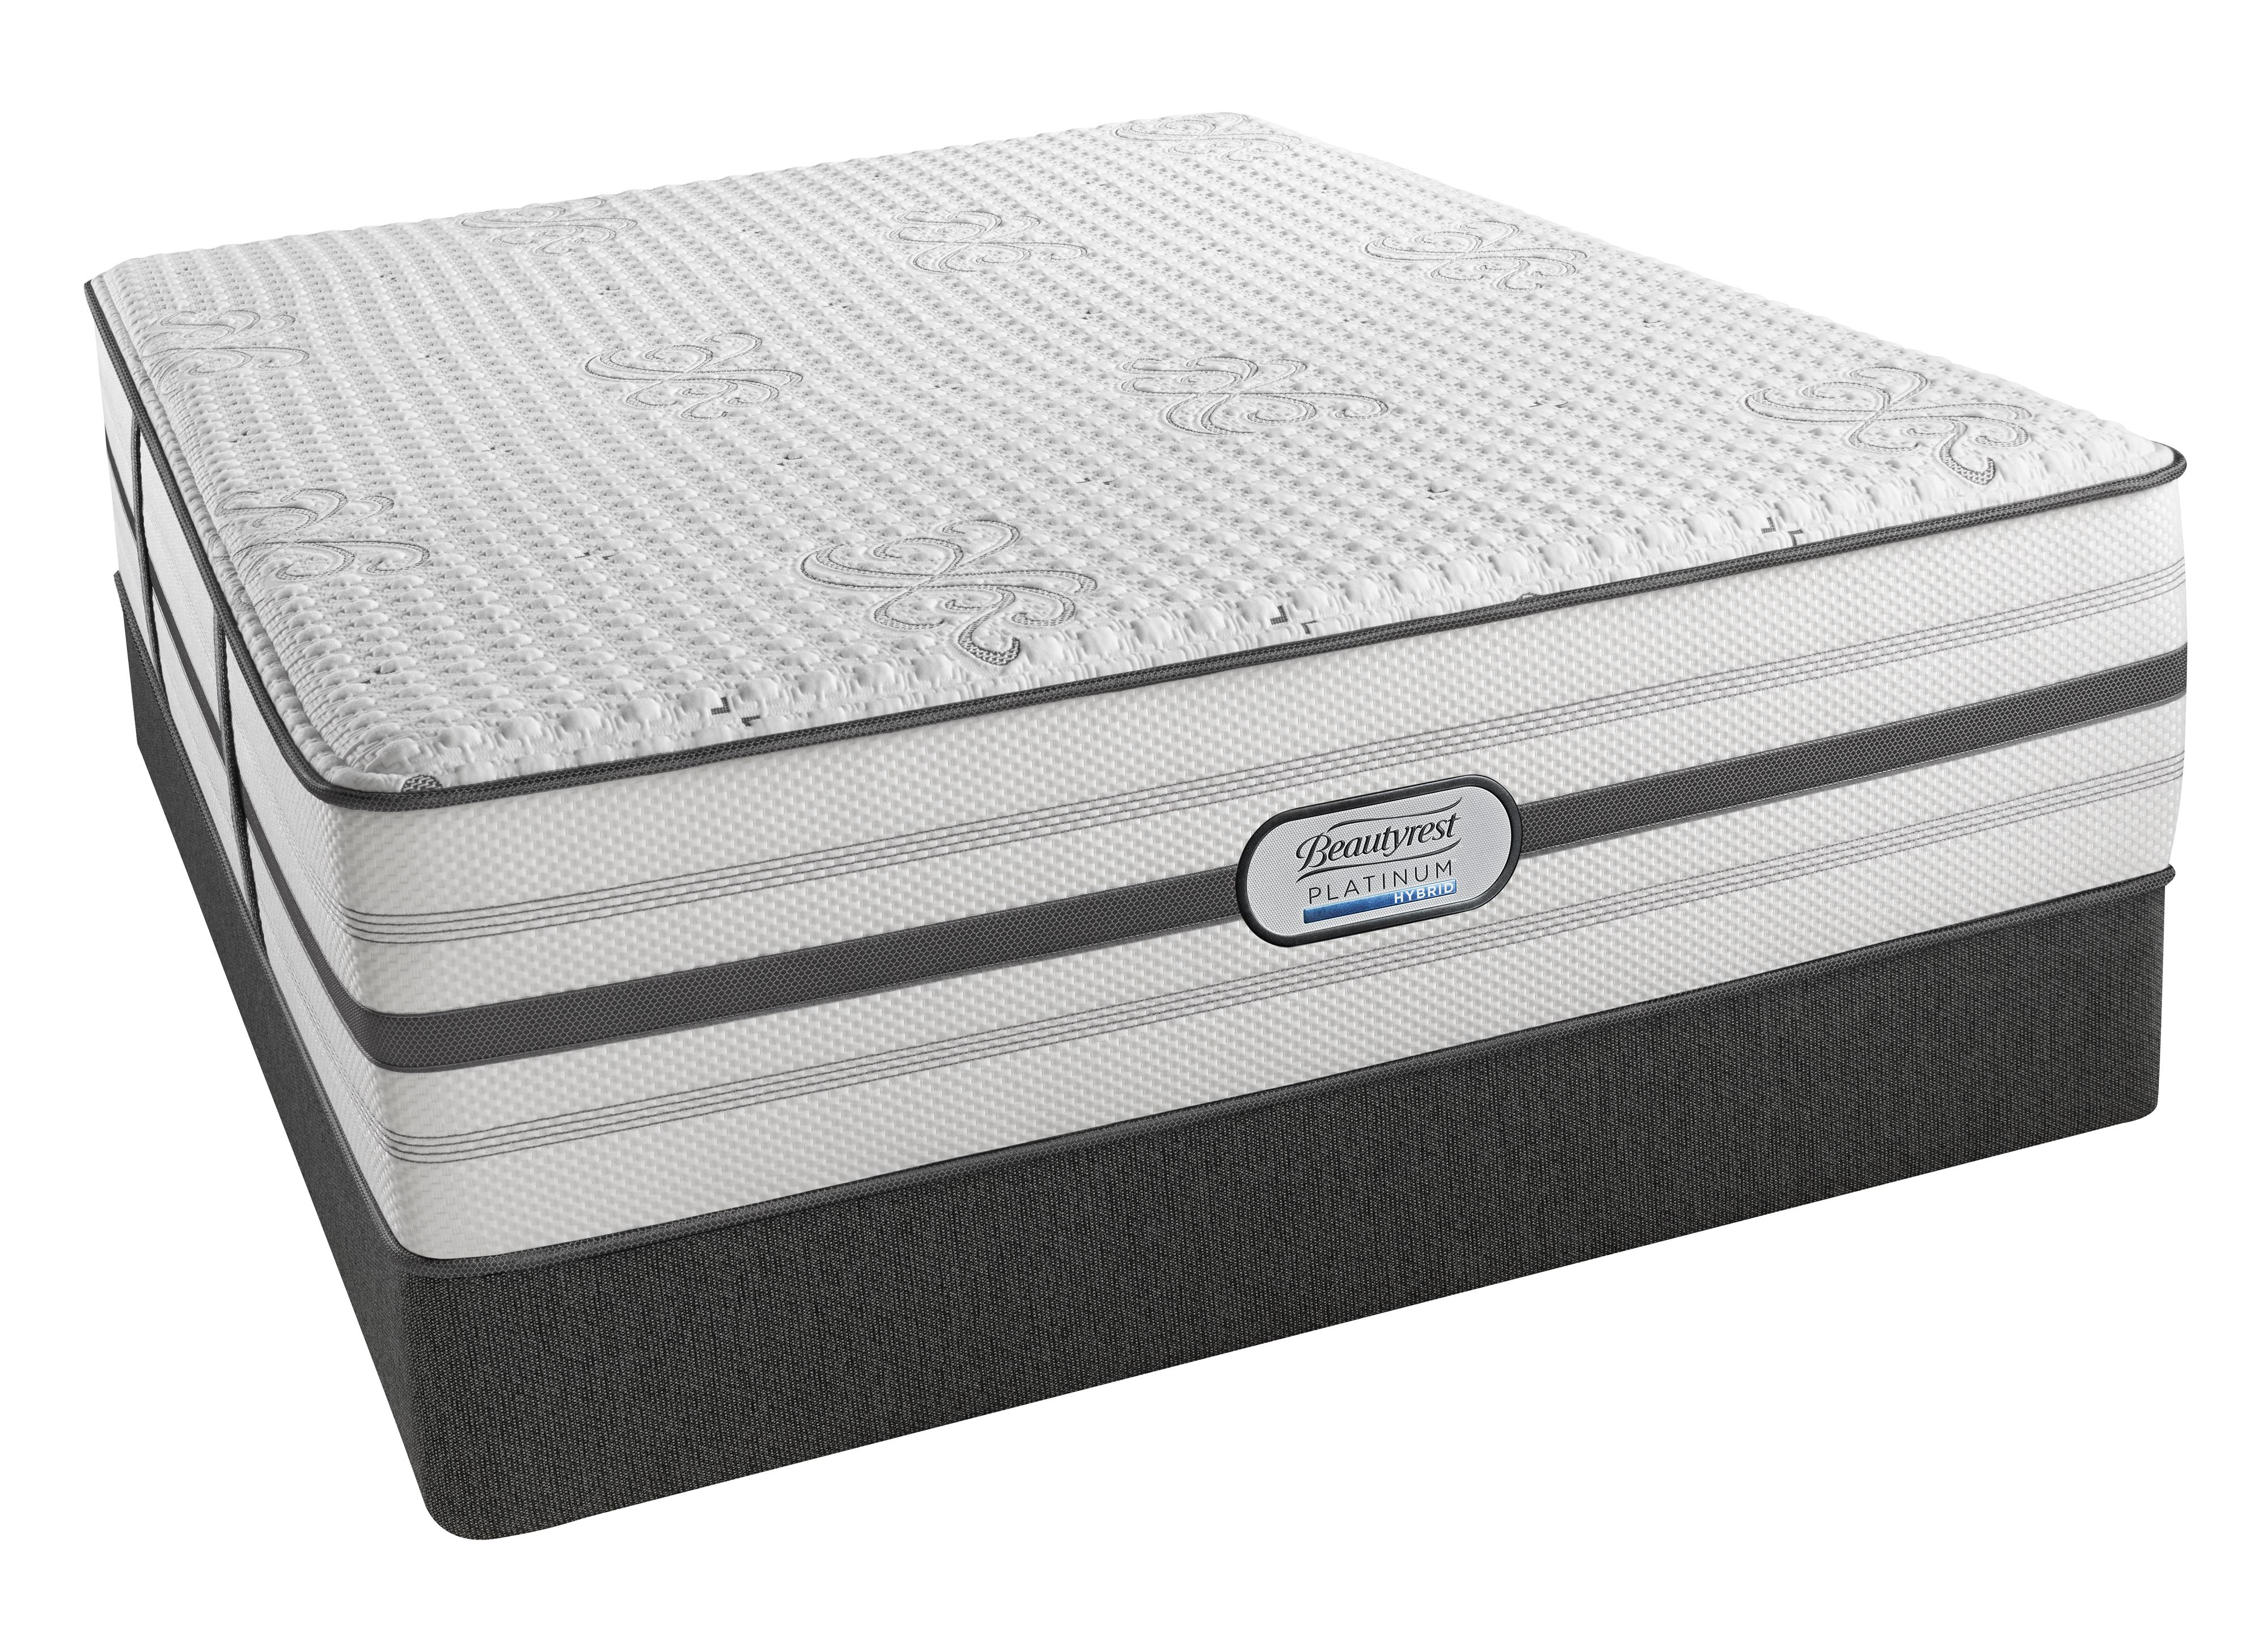 Beautyrest Platinum Hybrid Maddie King Luxury Firm Low Profile Set - Item Number: BRHLV3LF-K+2x700150470-6060